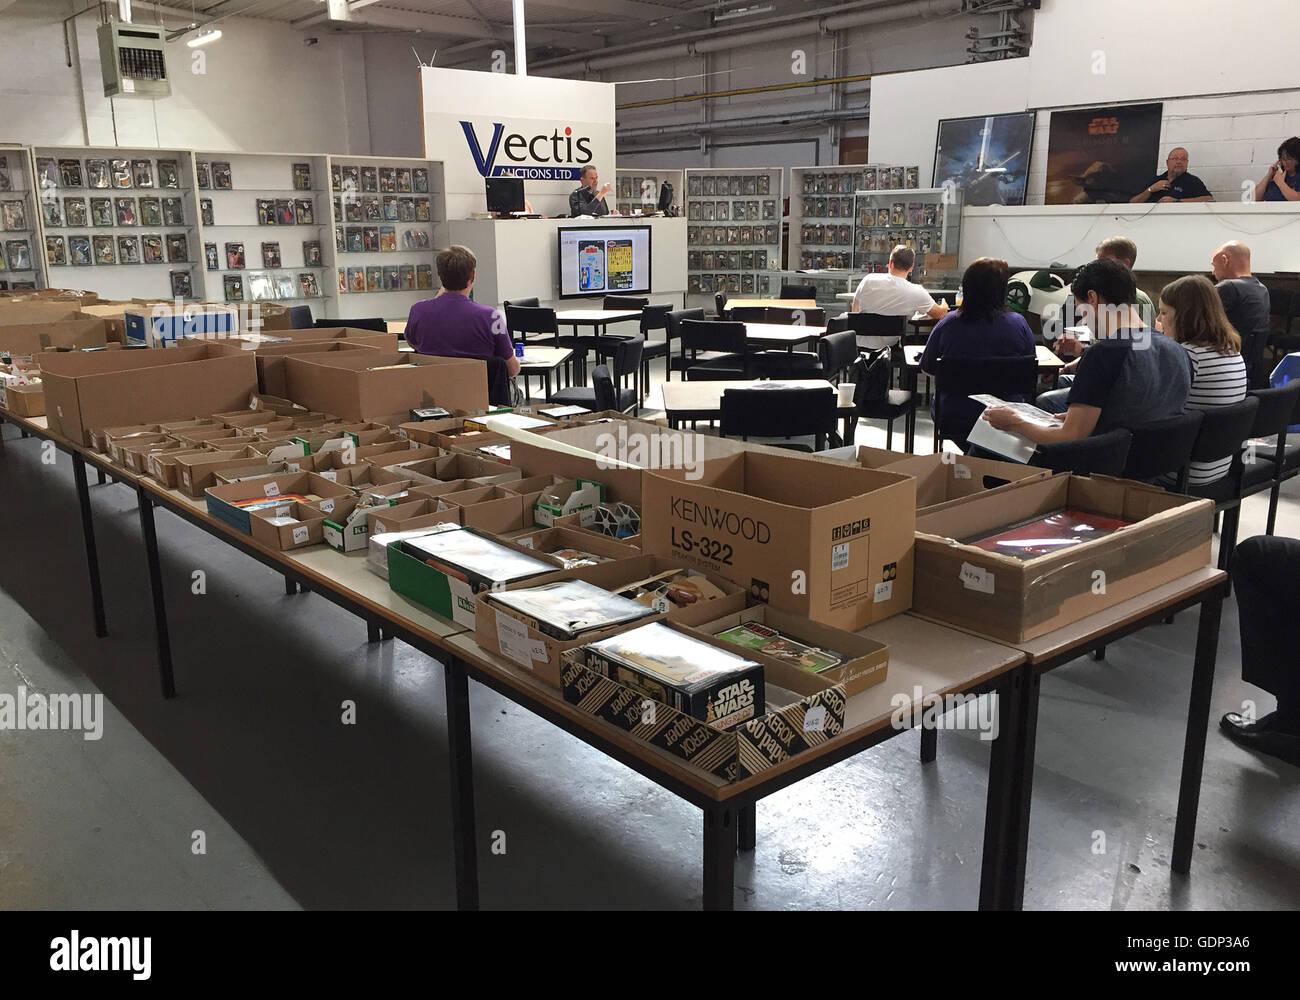 People attend the auction of a large private collection of 700 Star Wars items which are expected to bring in around £500,000 when they go under the hammer at Vectis Auctions in Thornaby, Teesside. Stock Photo